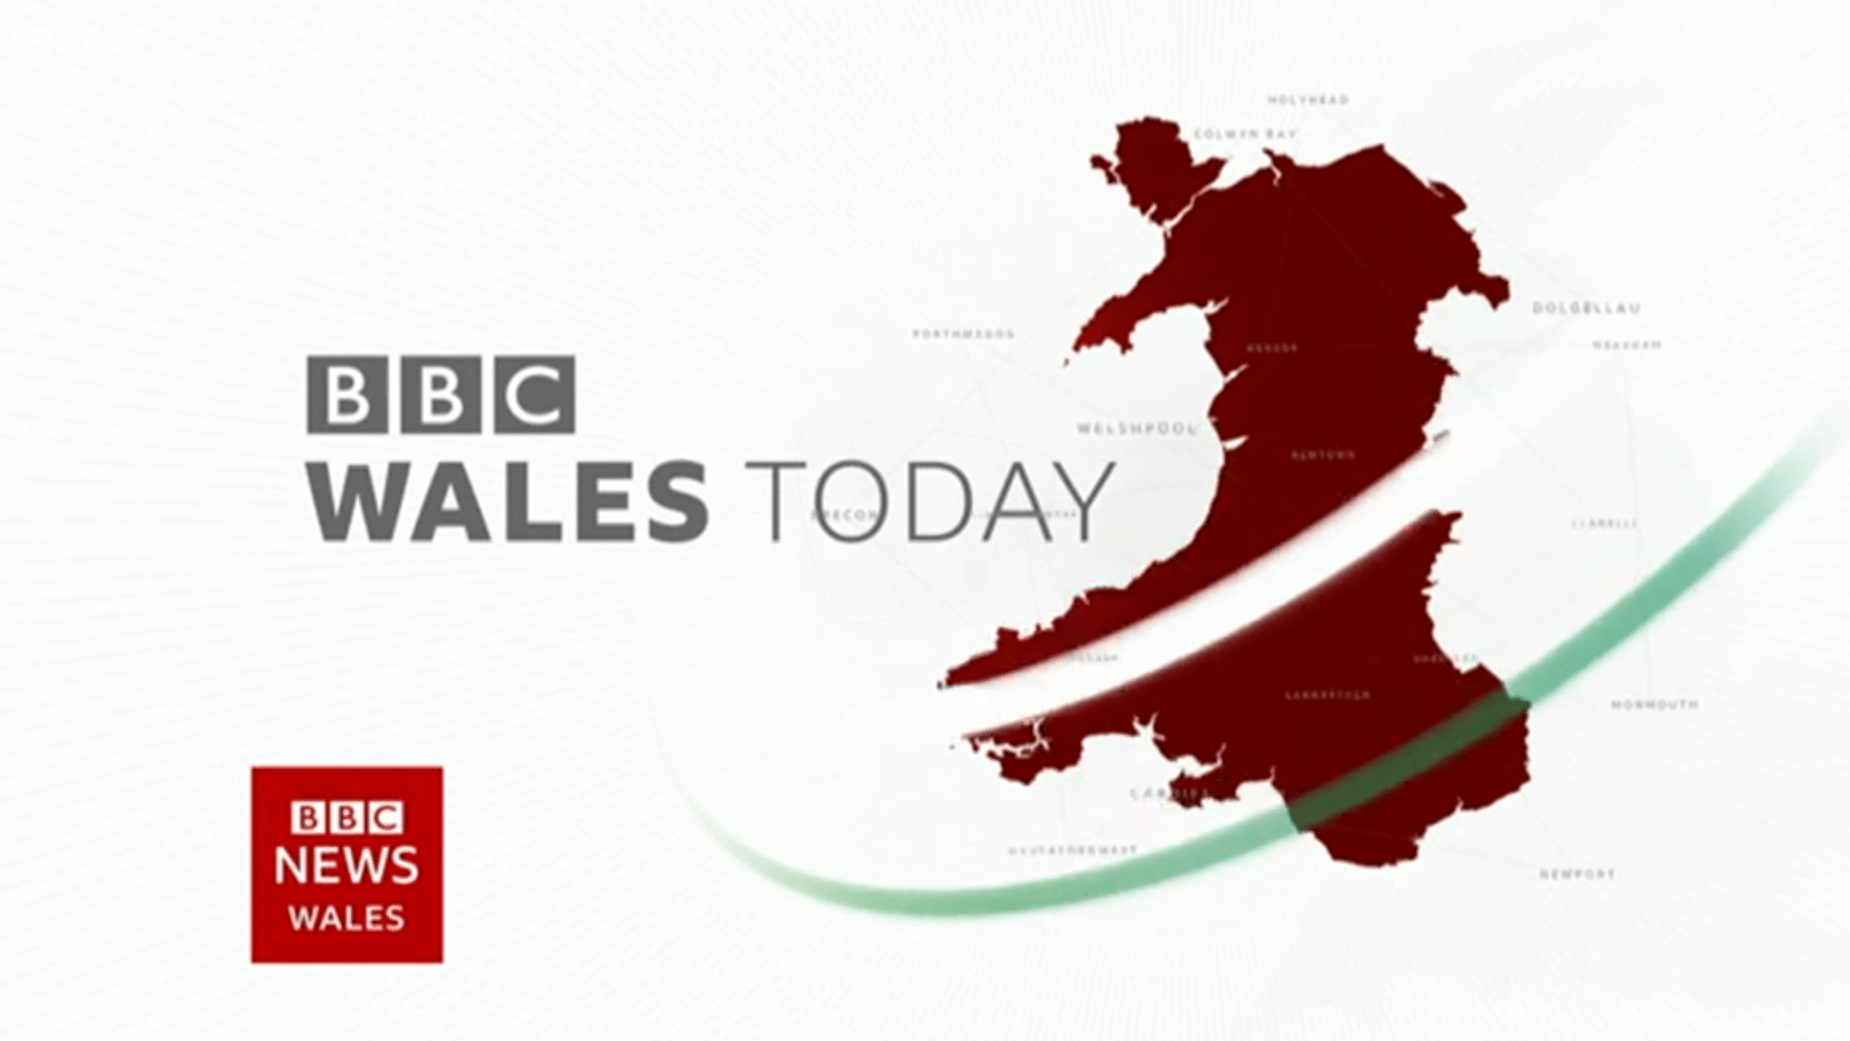 PICTURED: BBC Wales Today opening titles.